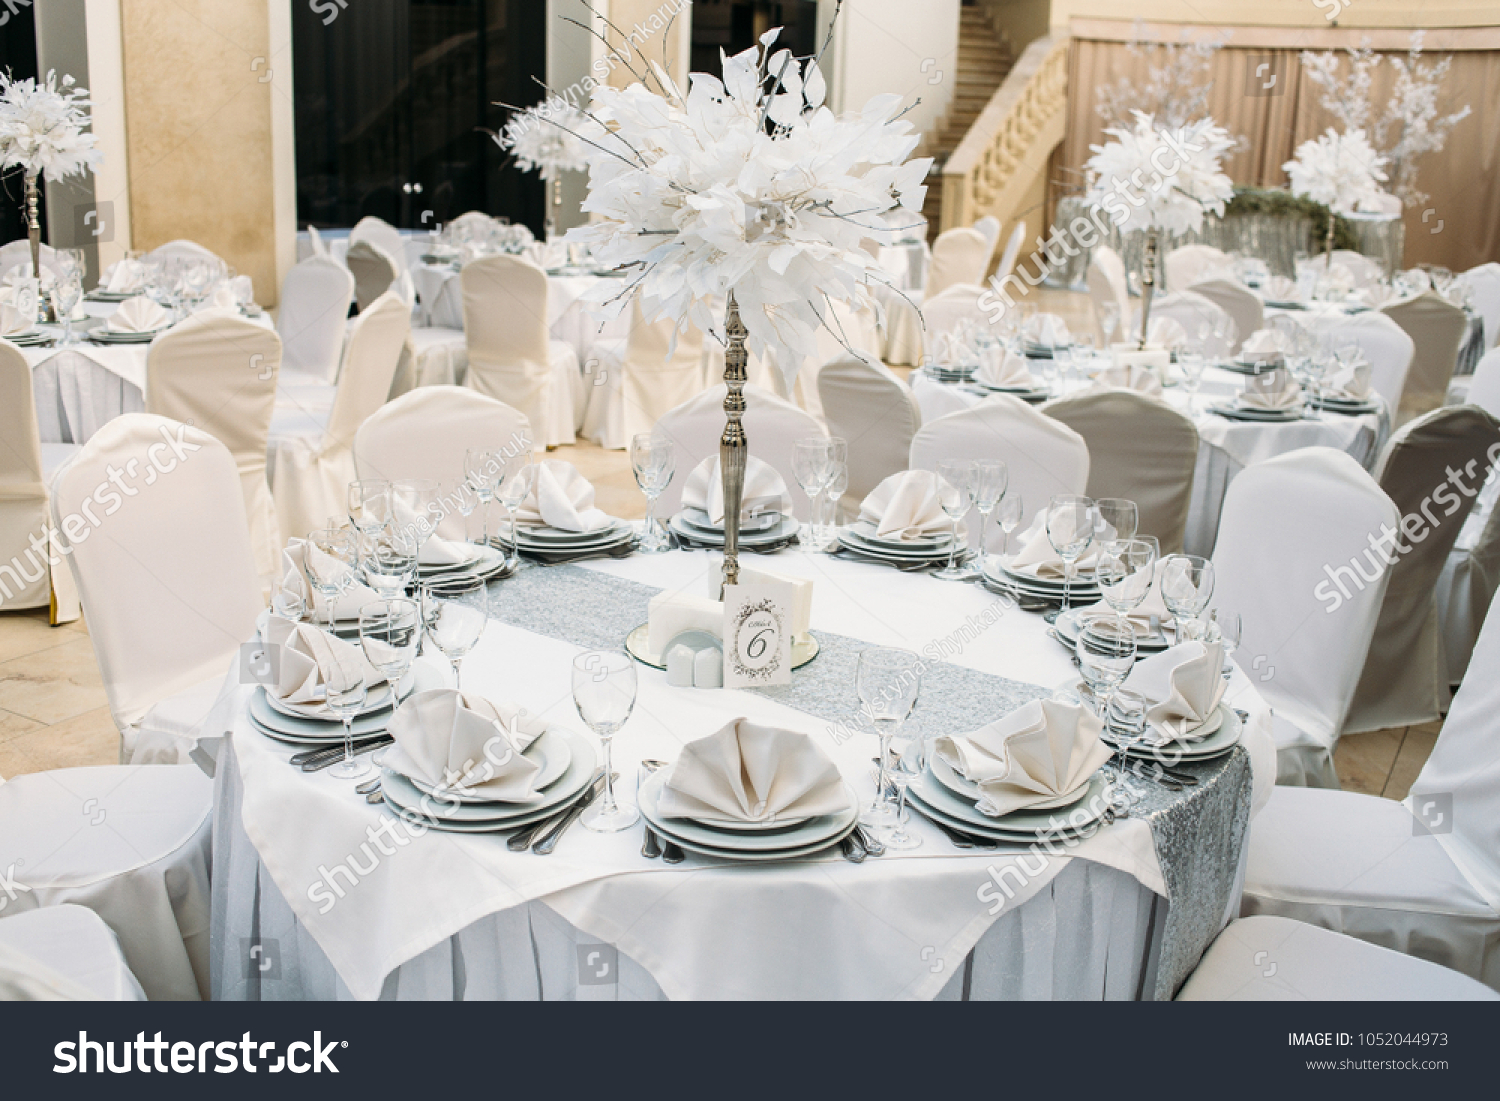 Little Round White Tables Decorated Grey Stock Photo & Image ...